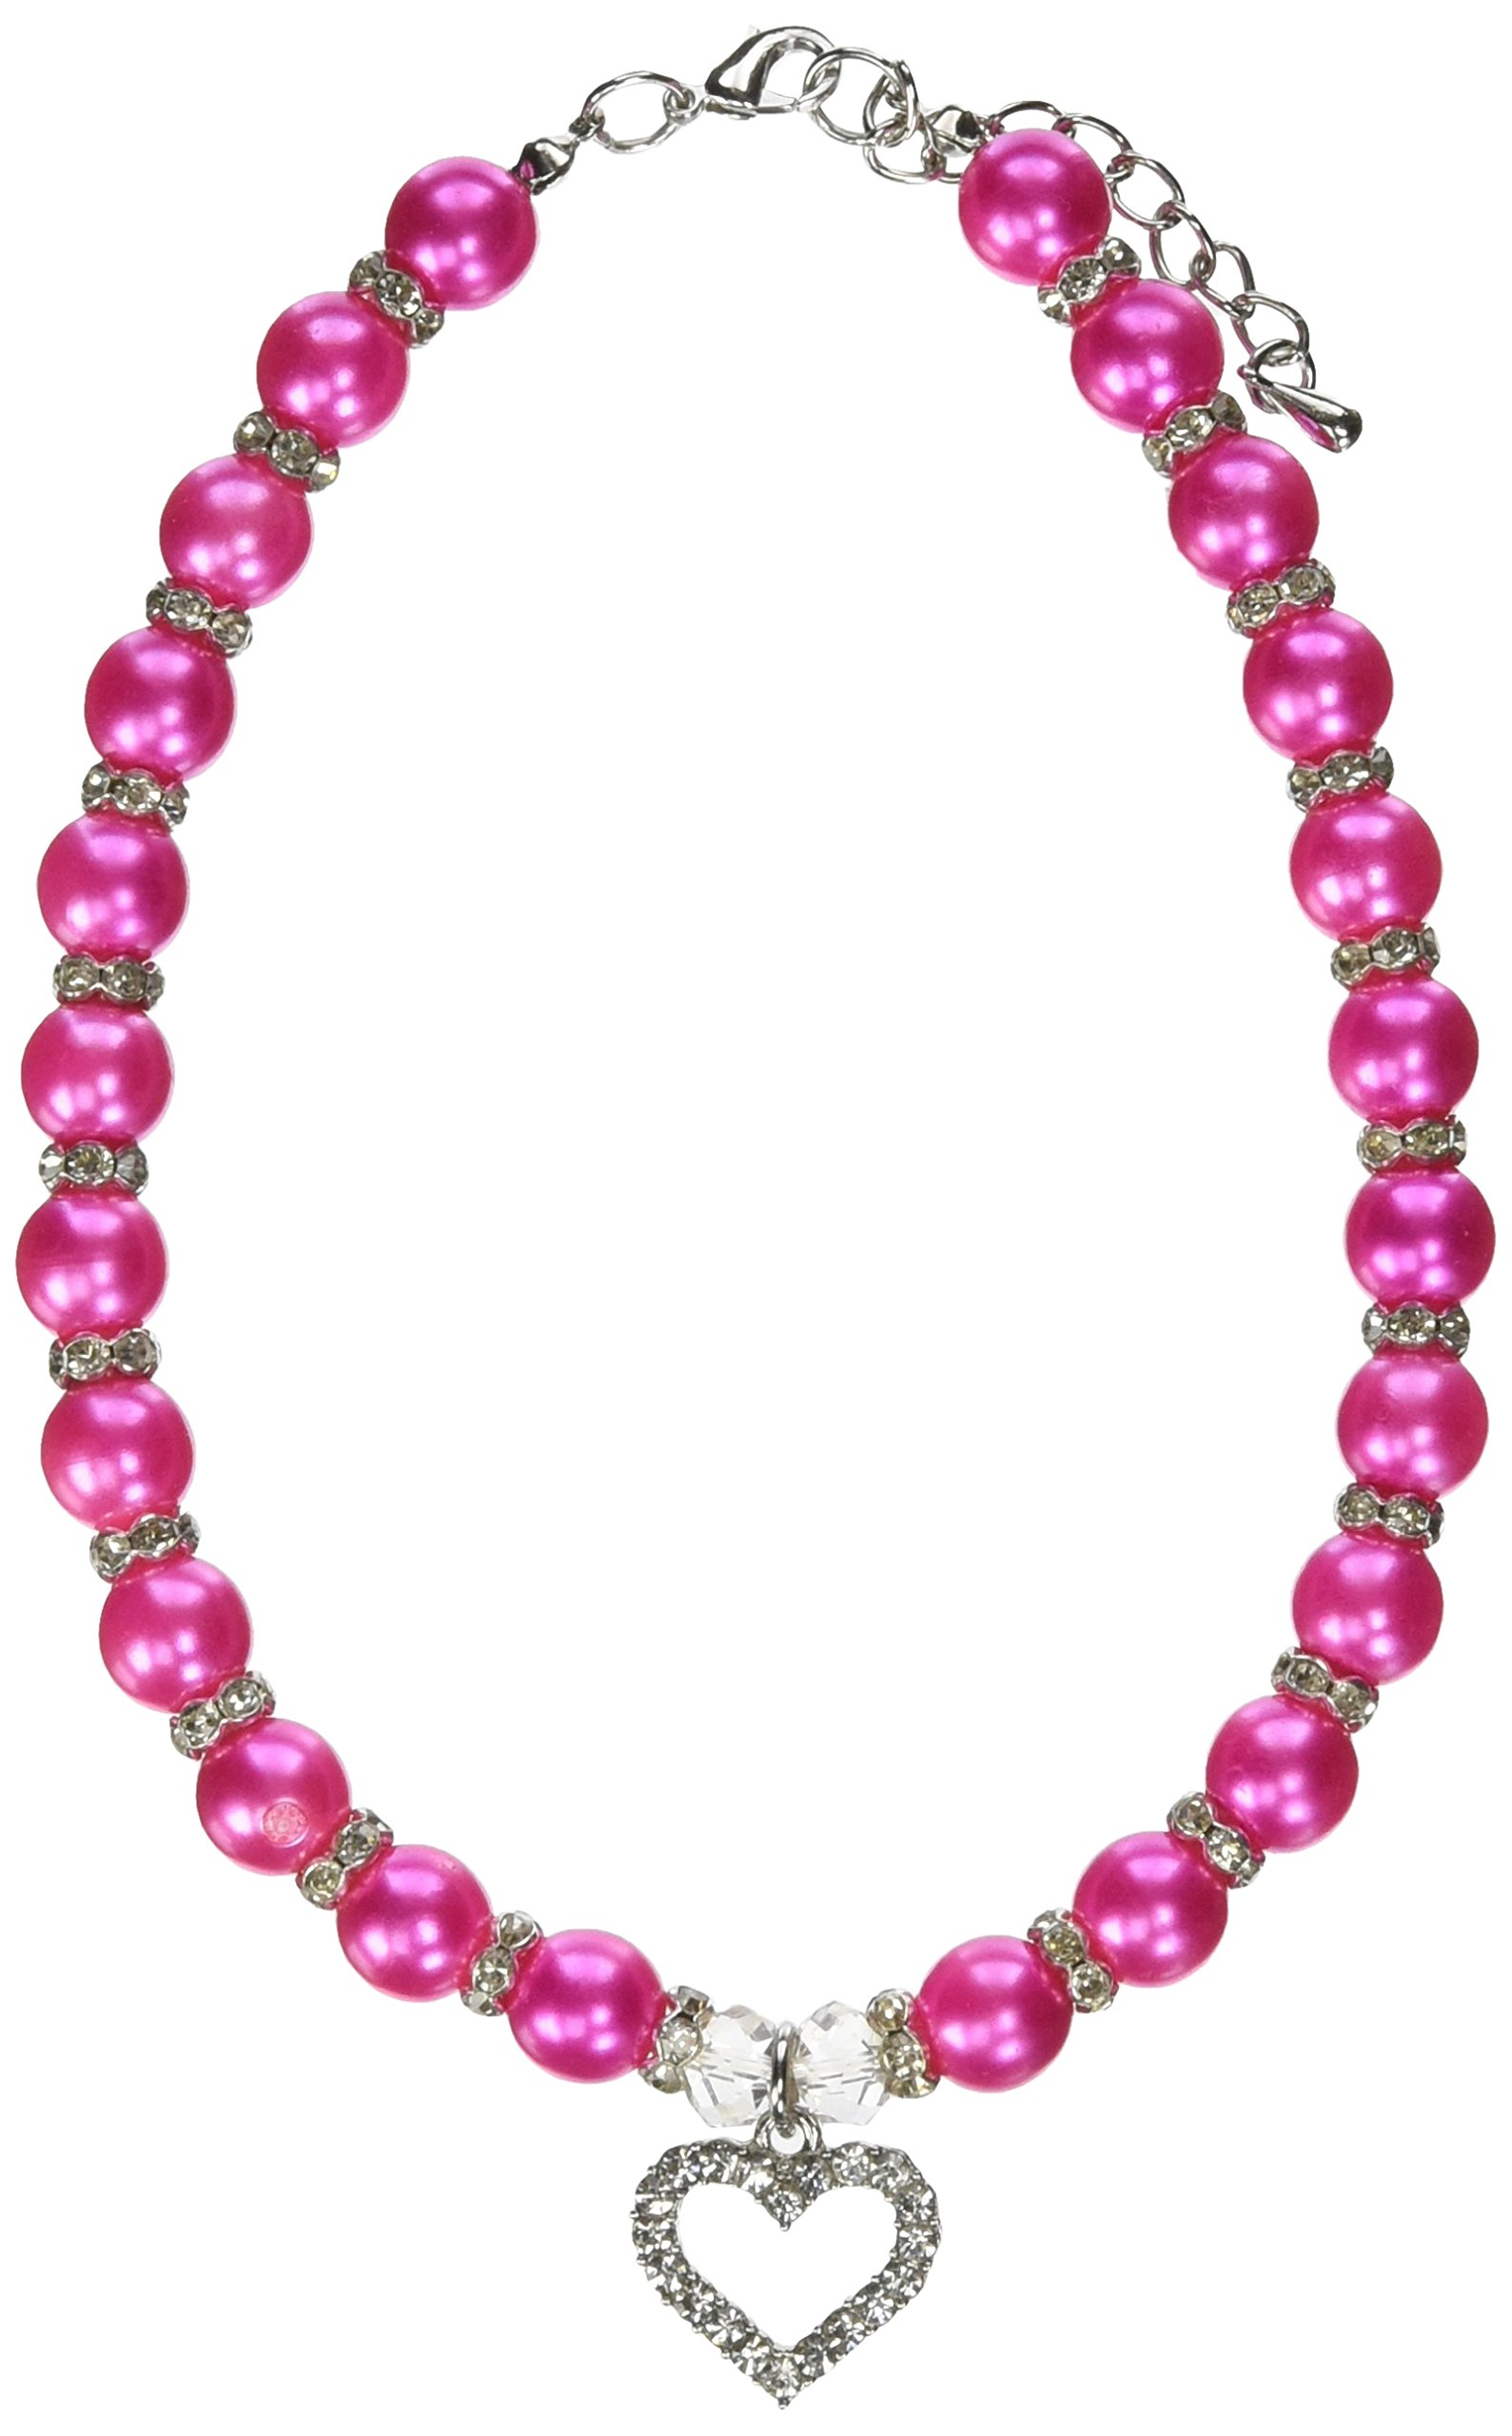 Mirage Pet Products 6 to 8-Inch Glamour Bits Pet Jewelry, Small, Pink